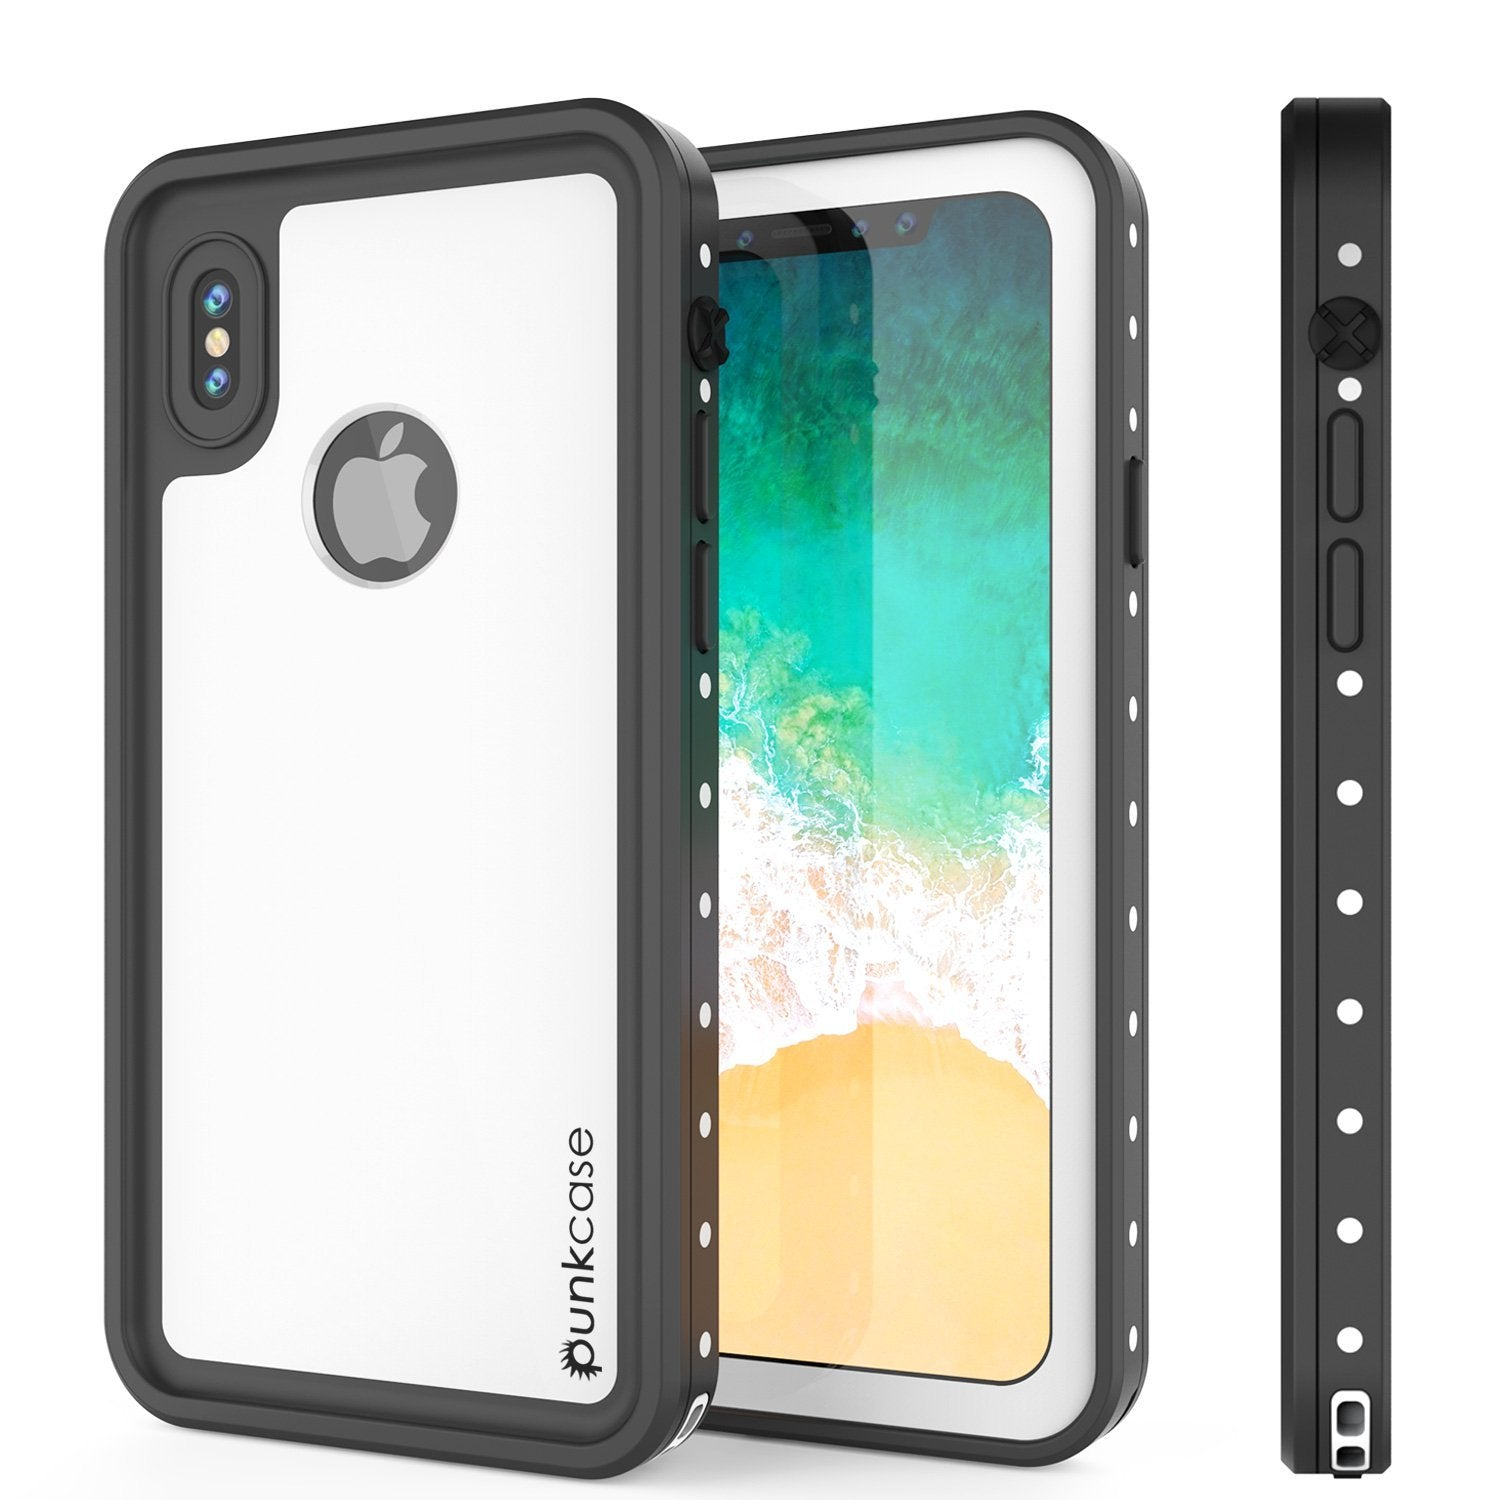 iPhone XS Max Waterproof IP68 Case, Punkcase [White] [StudStar Series] [Slim Fit] [Dirtproof]